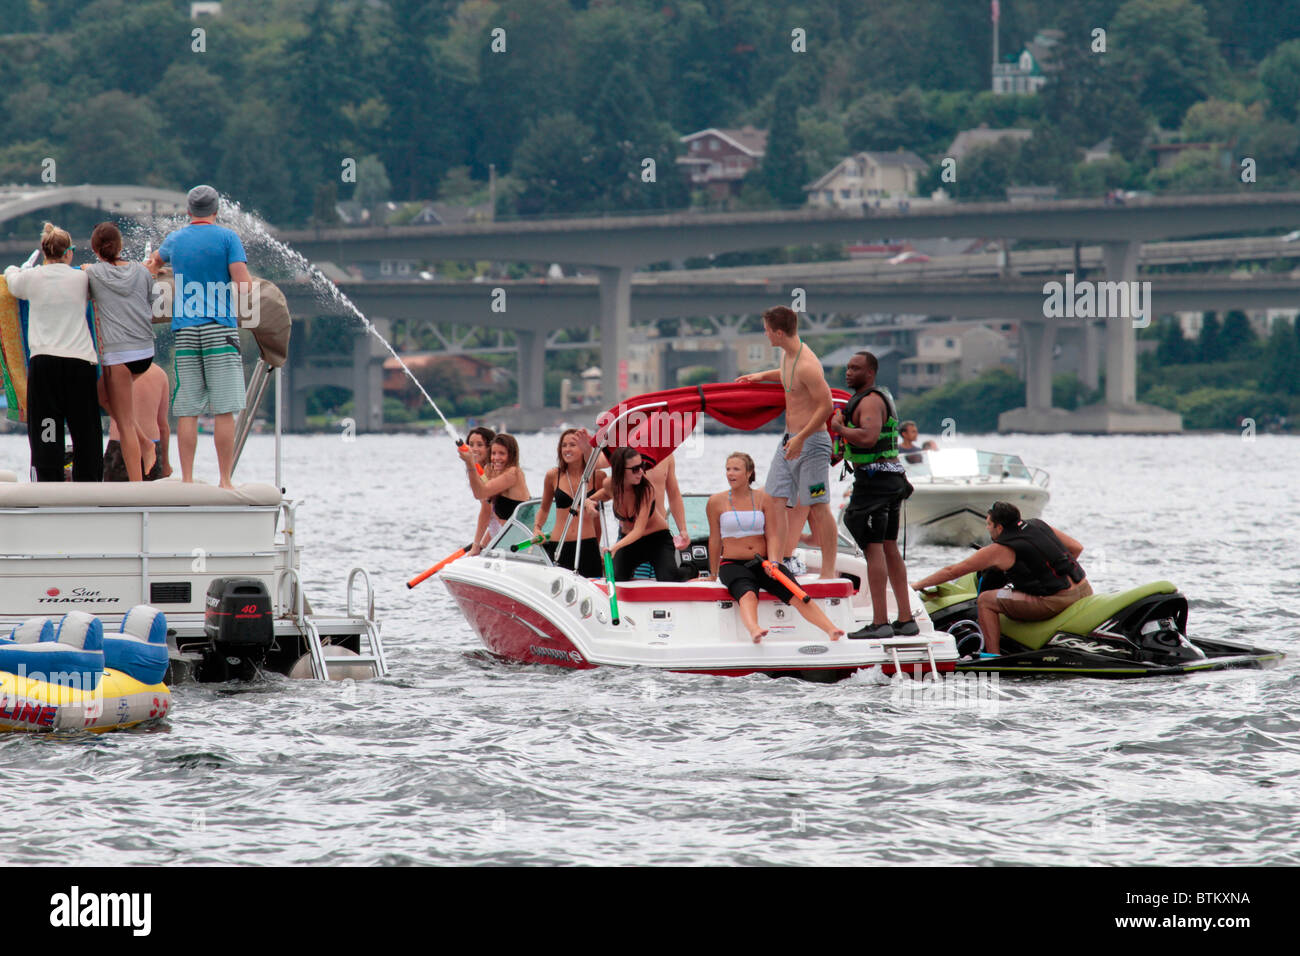 Seattle boaters partying on the water at Seafair watching the Blue Angels air show playfully squirting another group - Stock Image